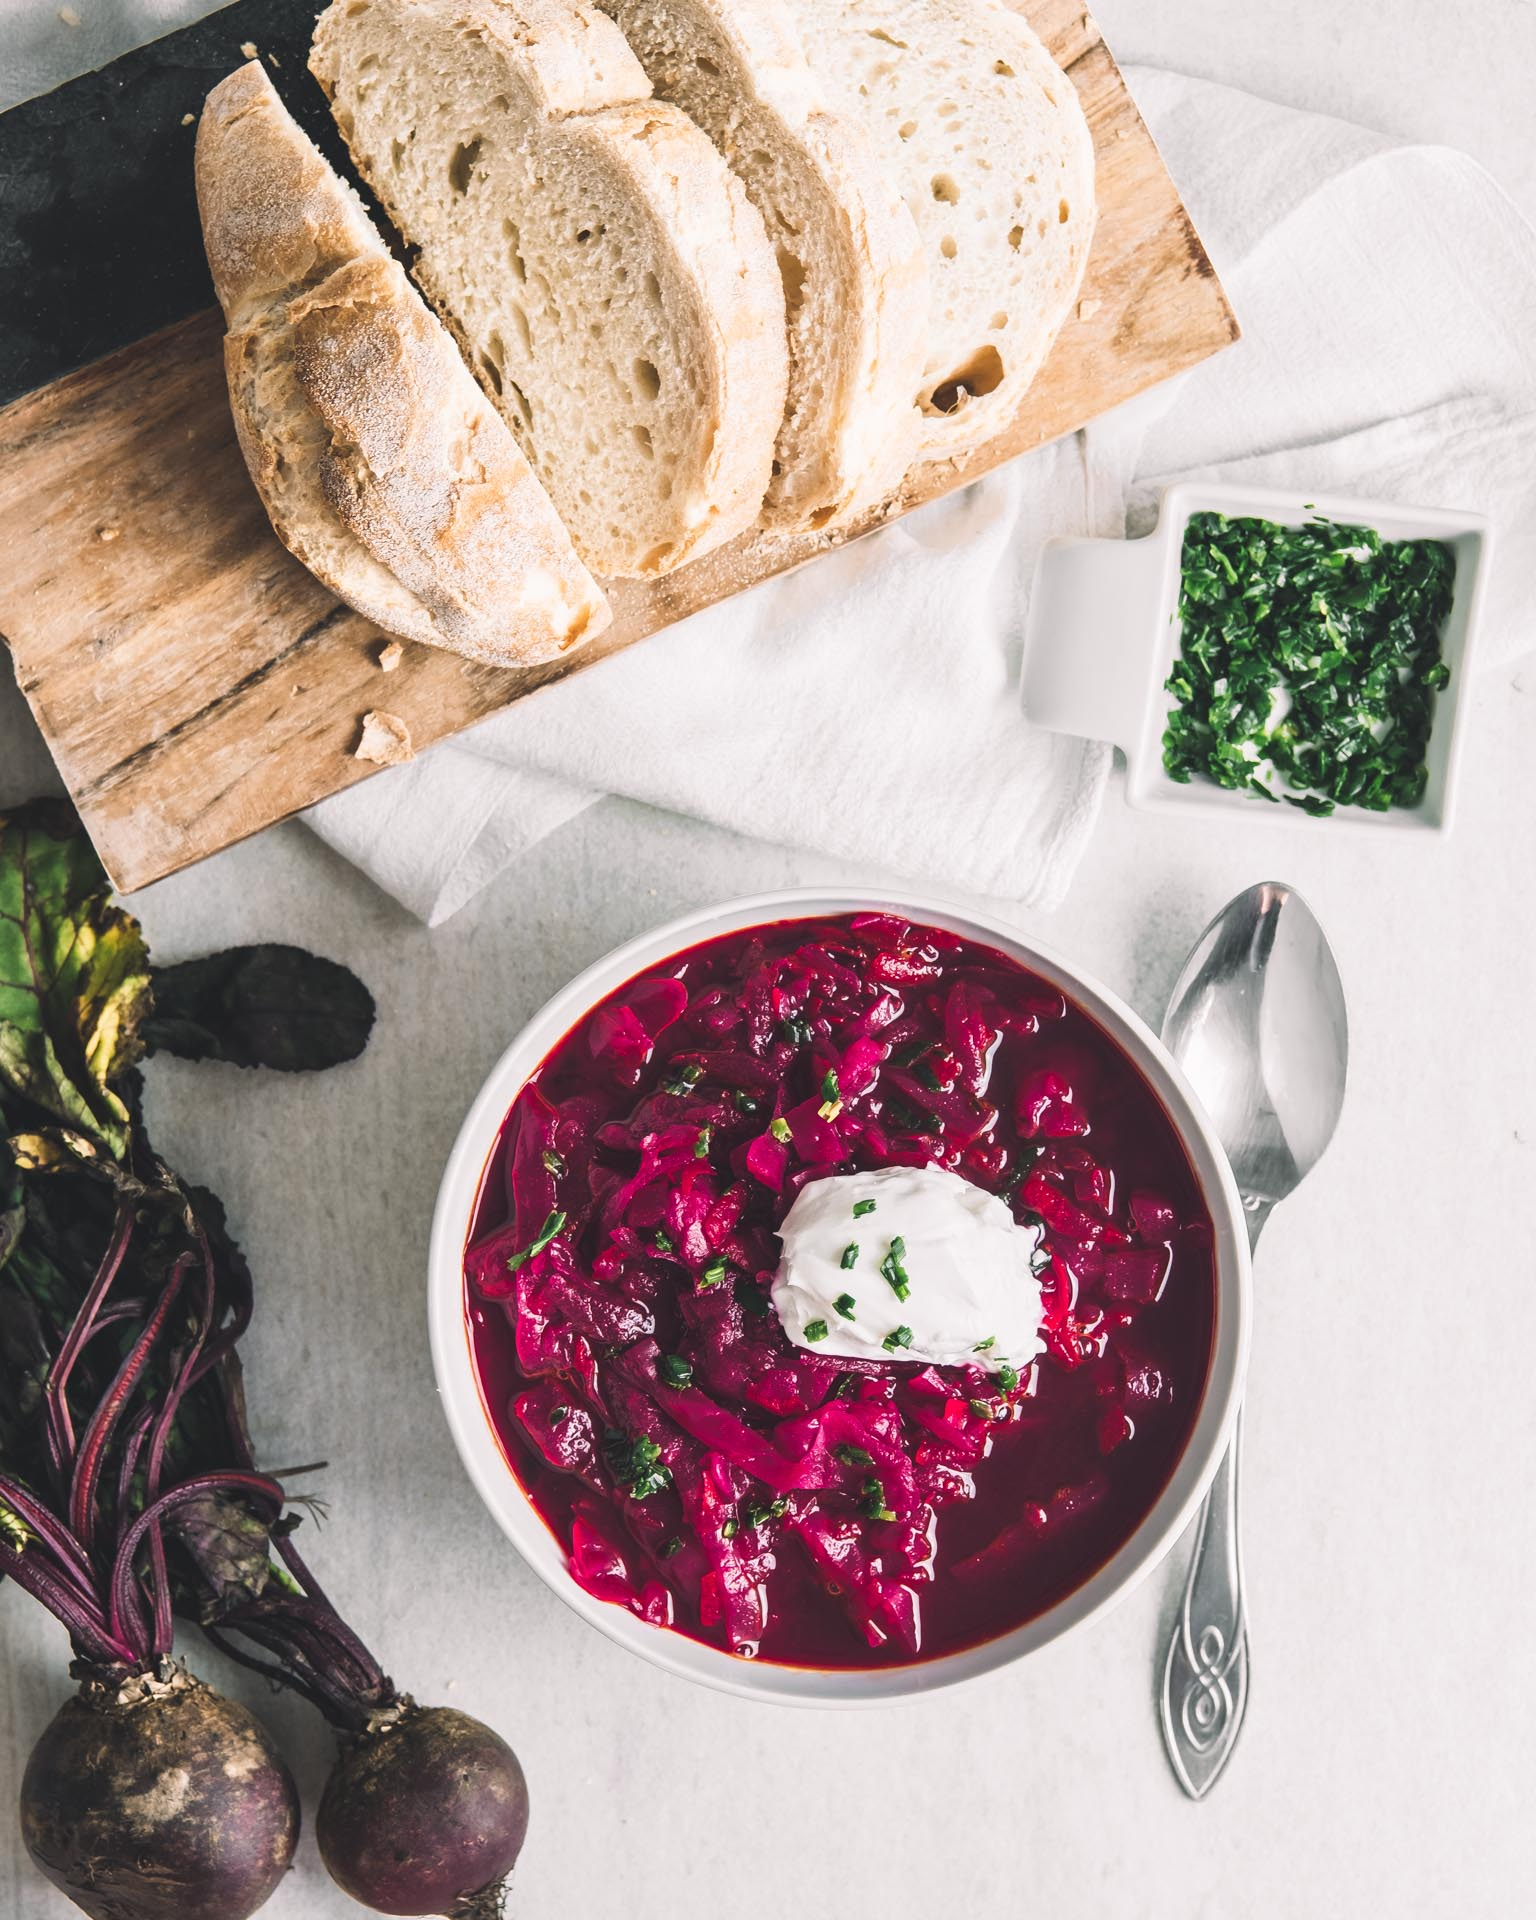 Vegan borscht beetroot soup